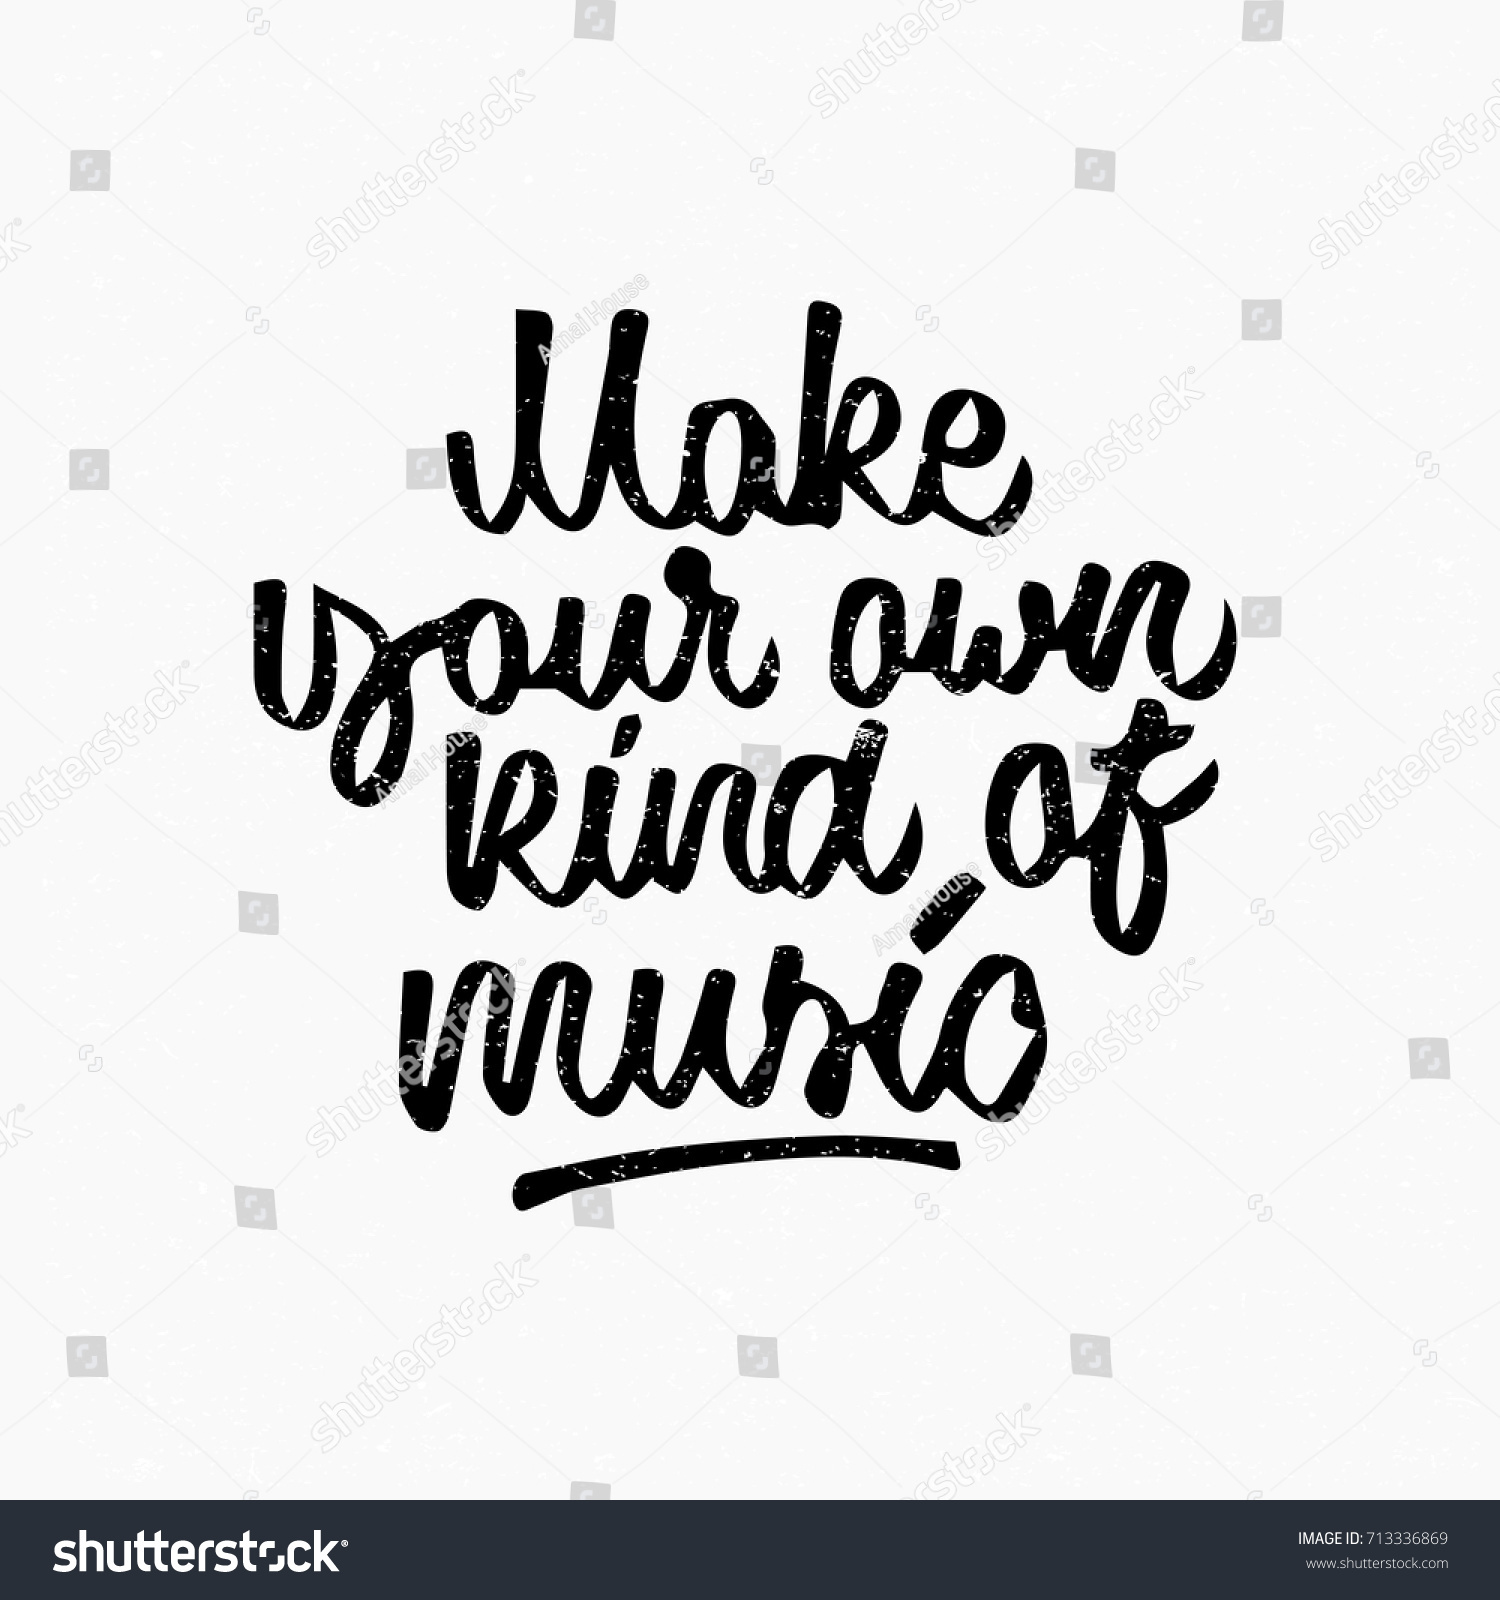 Make Your Own Kind Music Quote Stock Vector Royalty Free 713336869